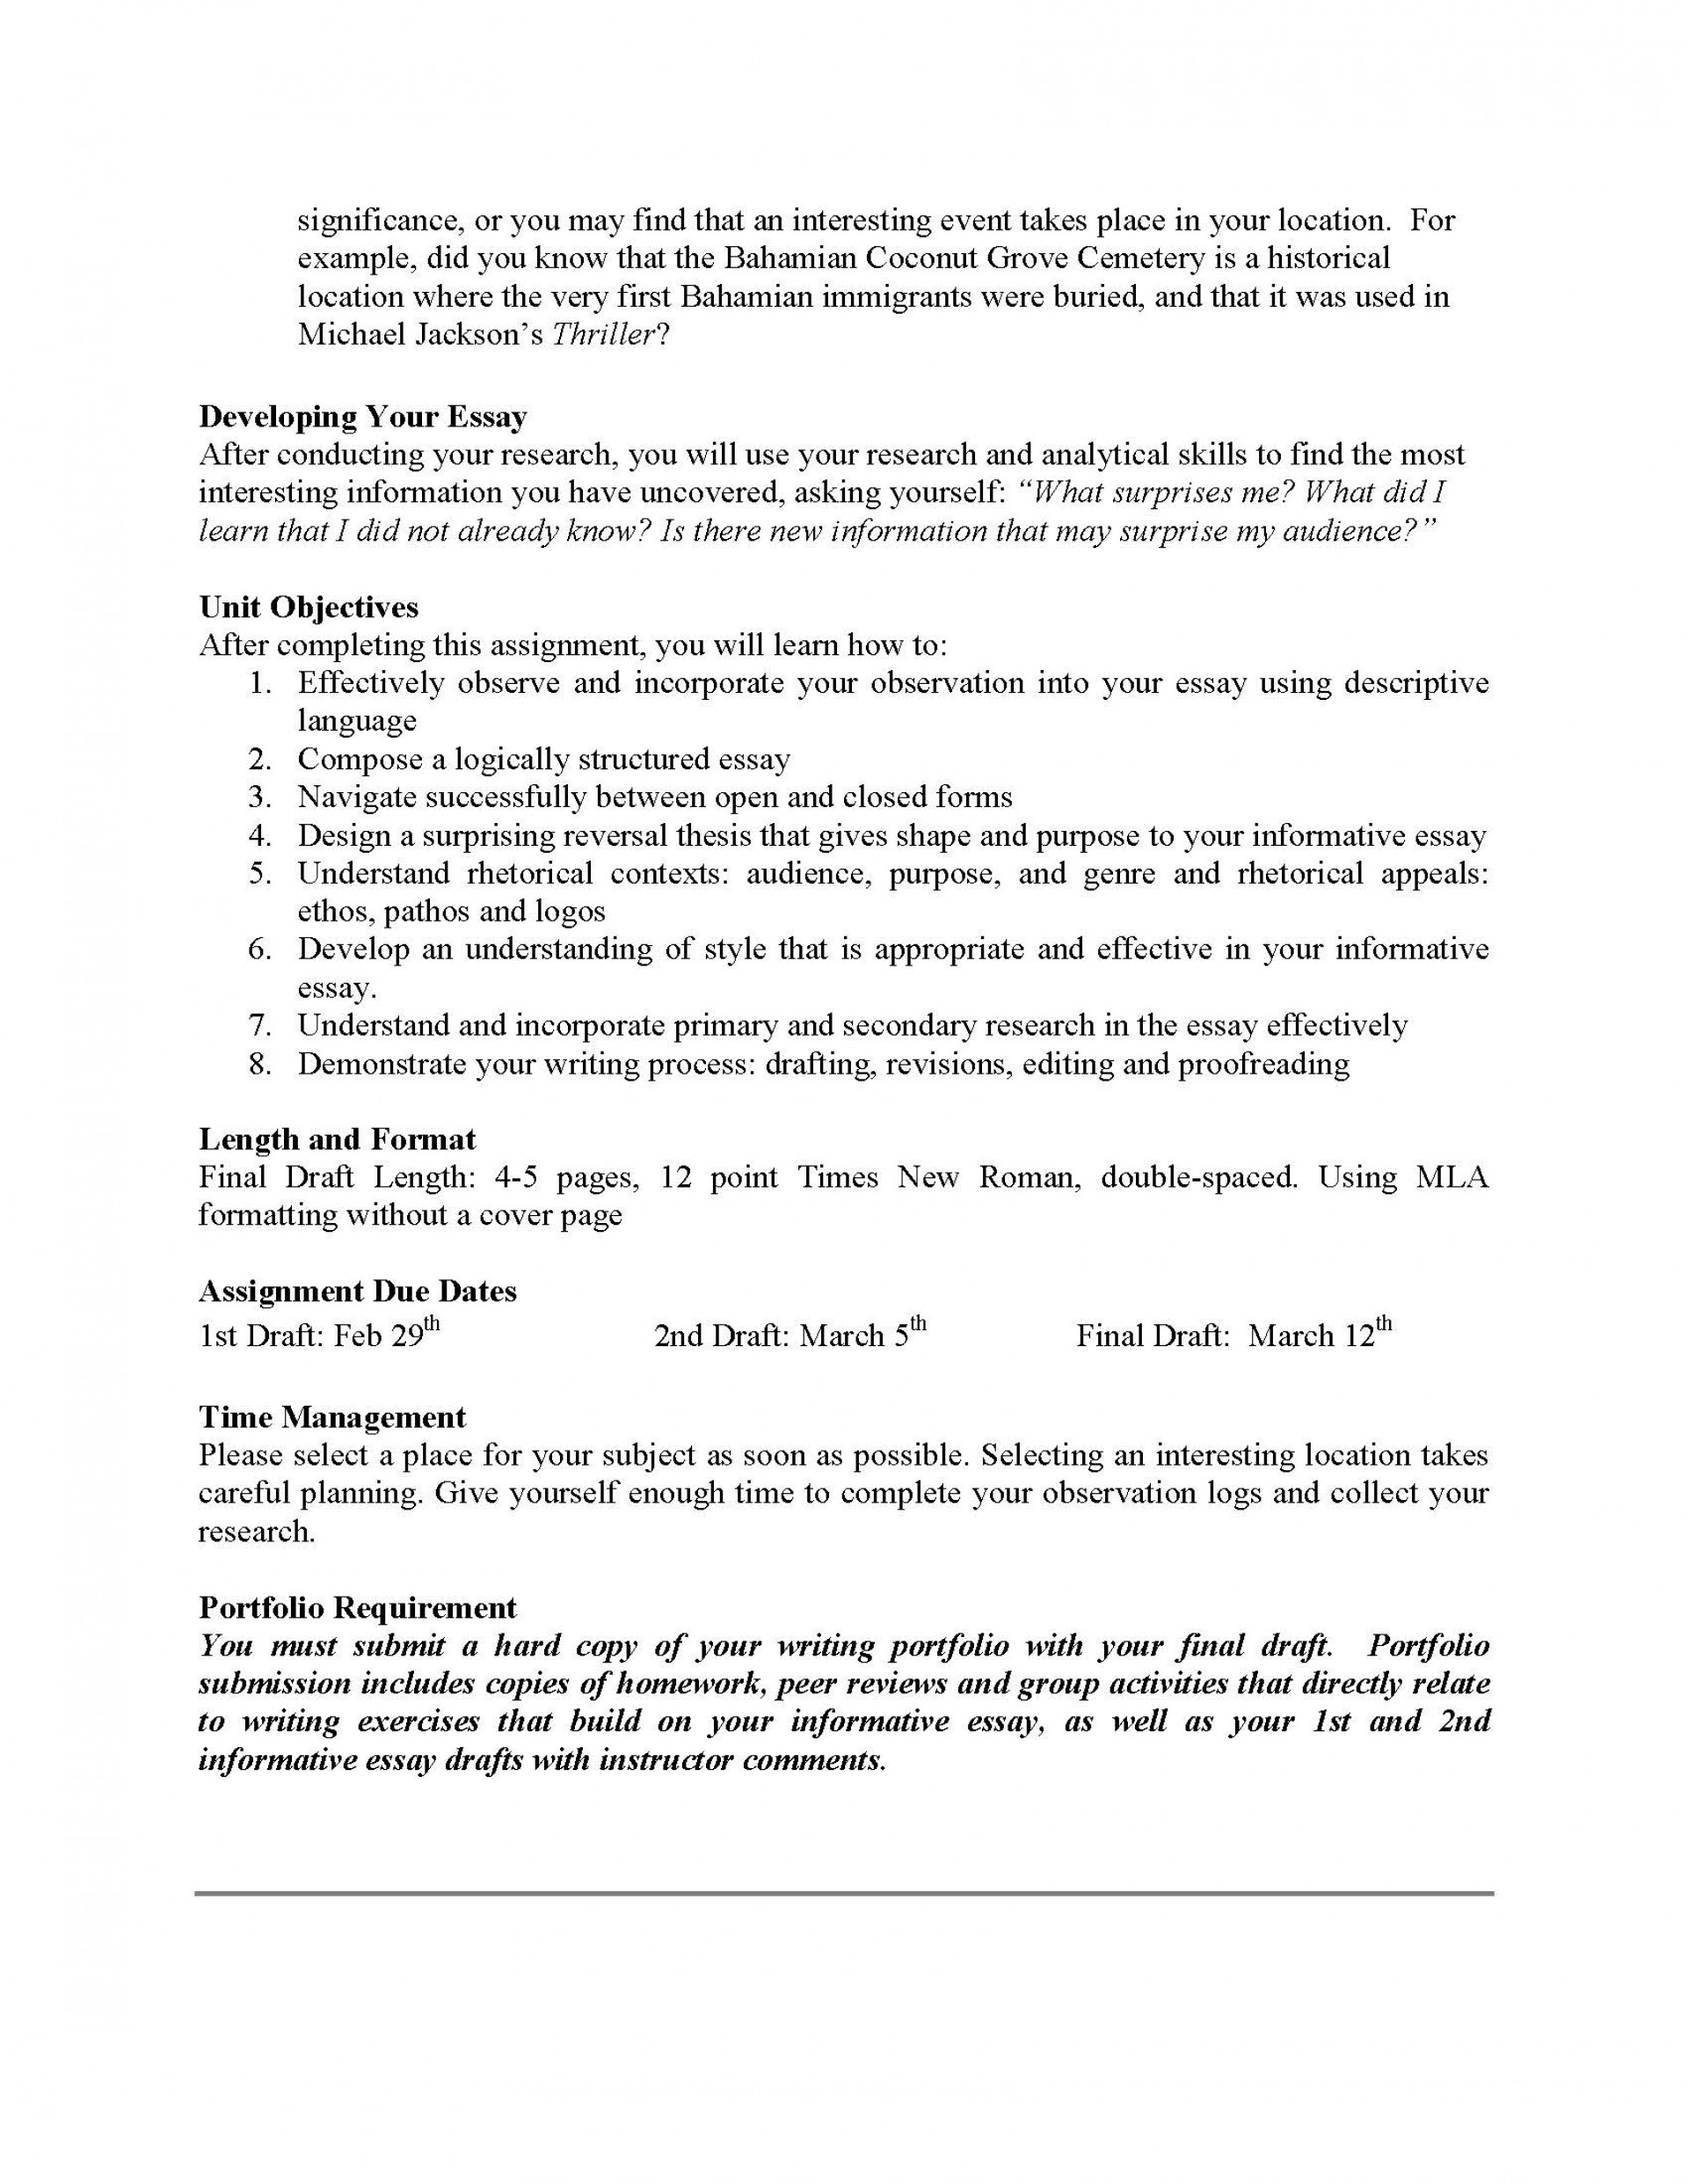 010 Informative Essay Ideas Unit Assignment Page 2 Wondrous Writing Prompts 5th Grade Common Core Expository 4th Pdf 1920